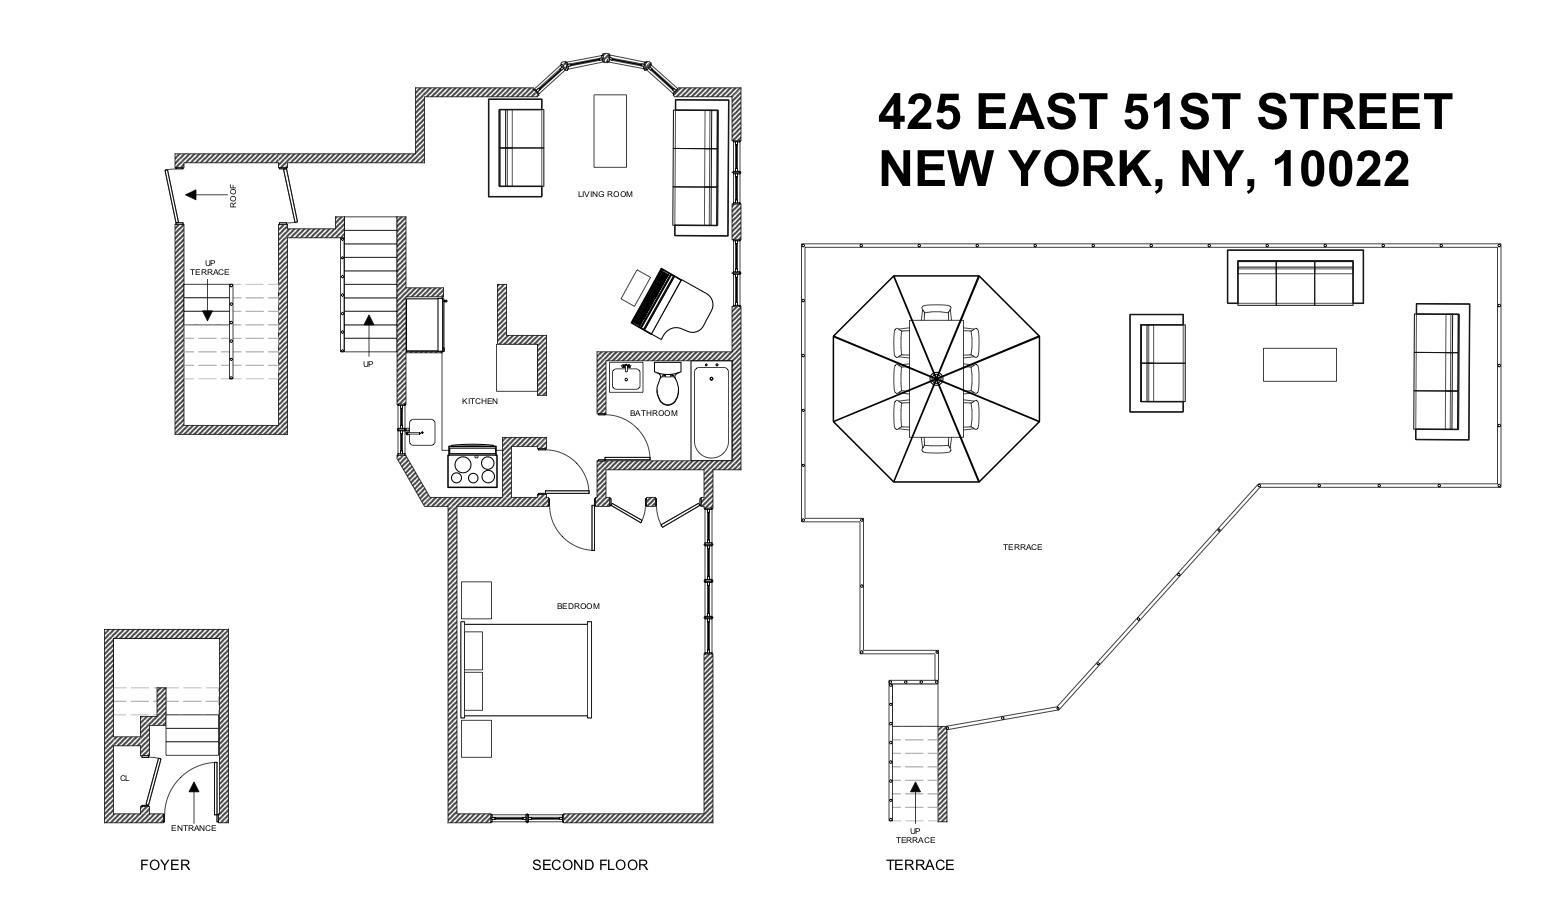 425 East 51st Street Beekman Place New York NY 10022